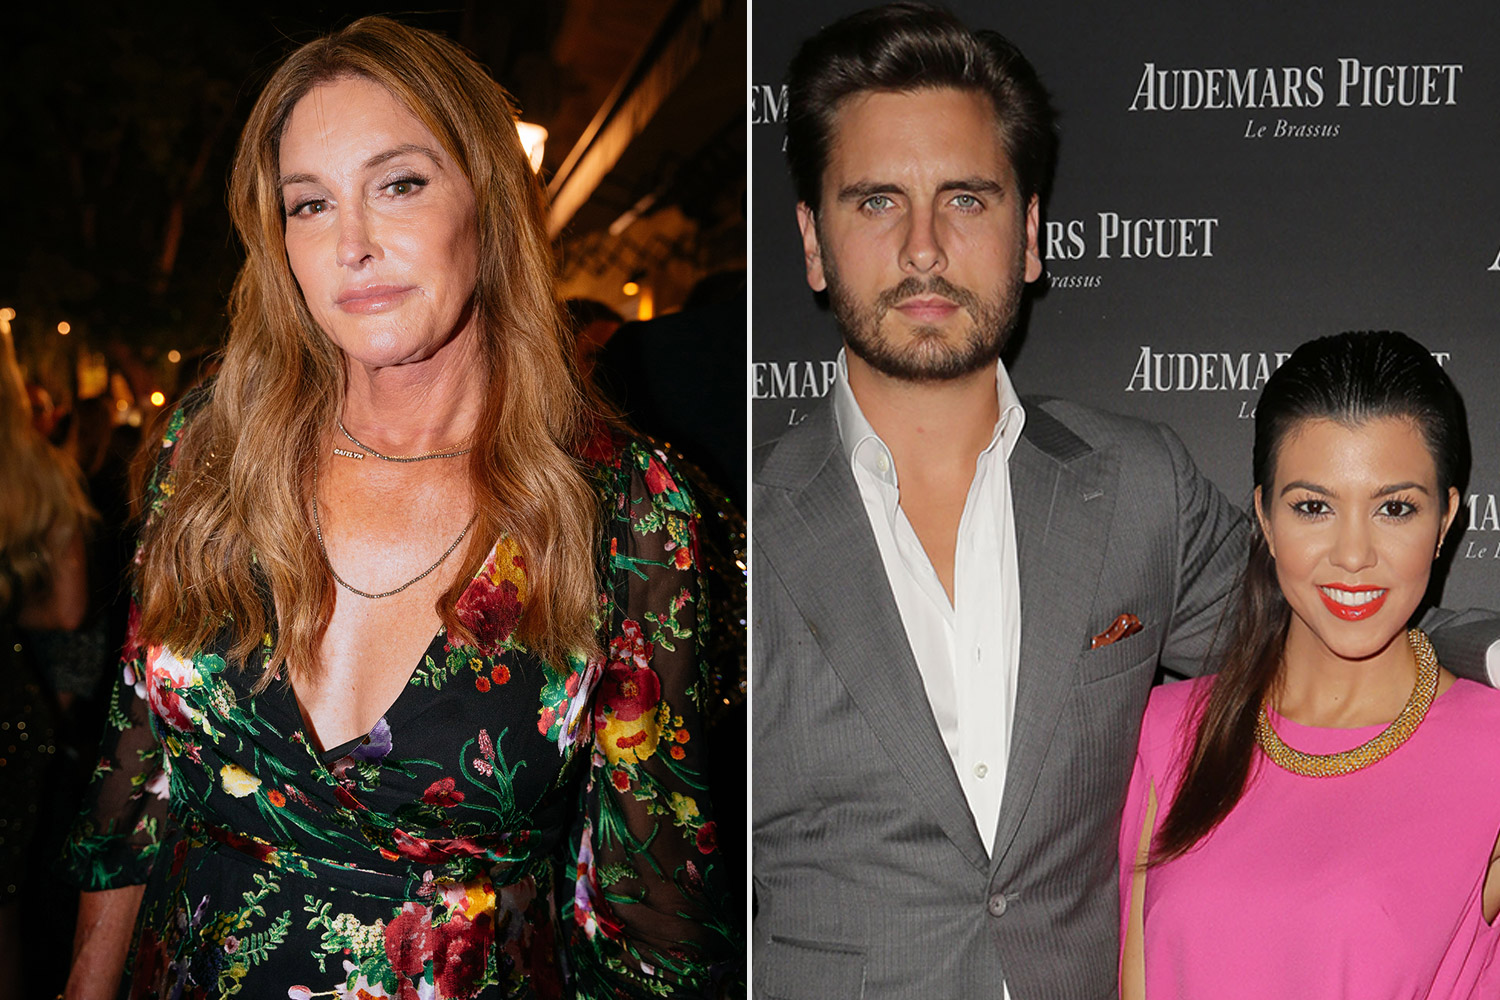 Caitlyn Jenner split with Kourtney and Scott